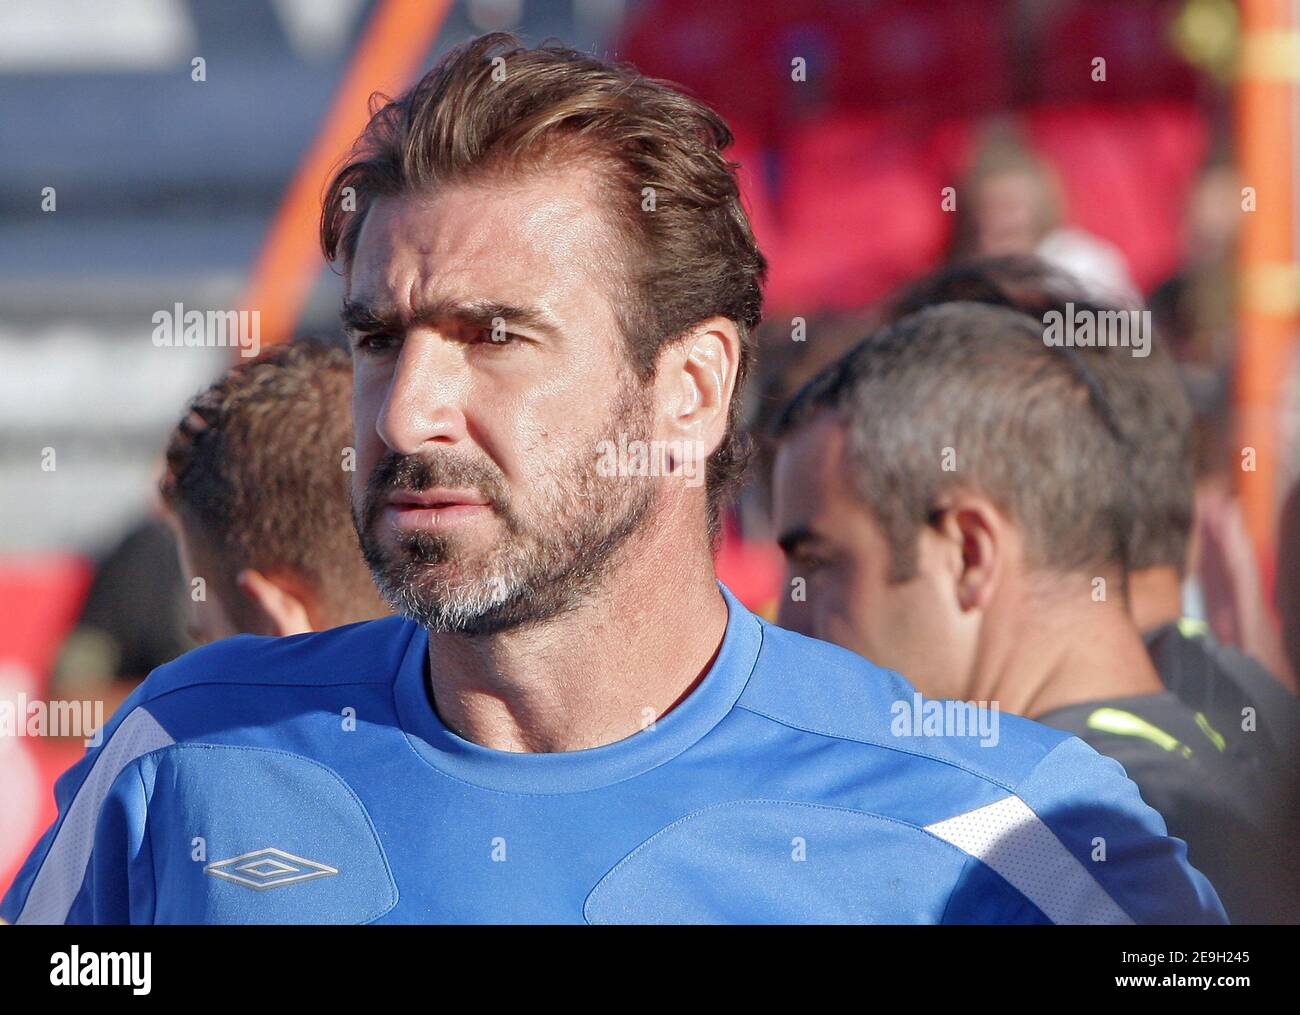 C'est l'amour de ma vie, et j'aime l'om parce que c'est marseille Eric Cantona Marseille High Resolution Stock Photography And Images Alamy